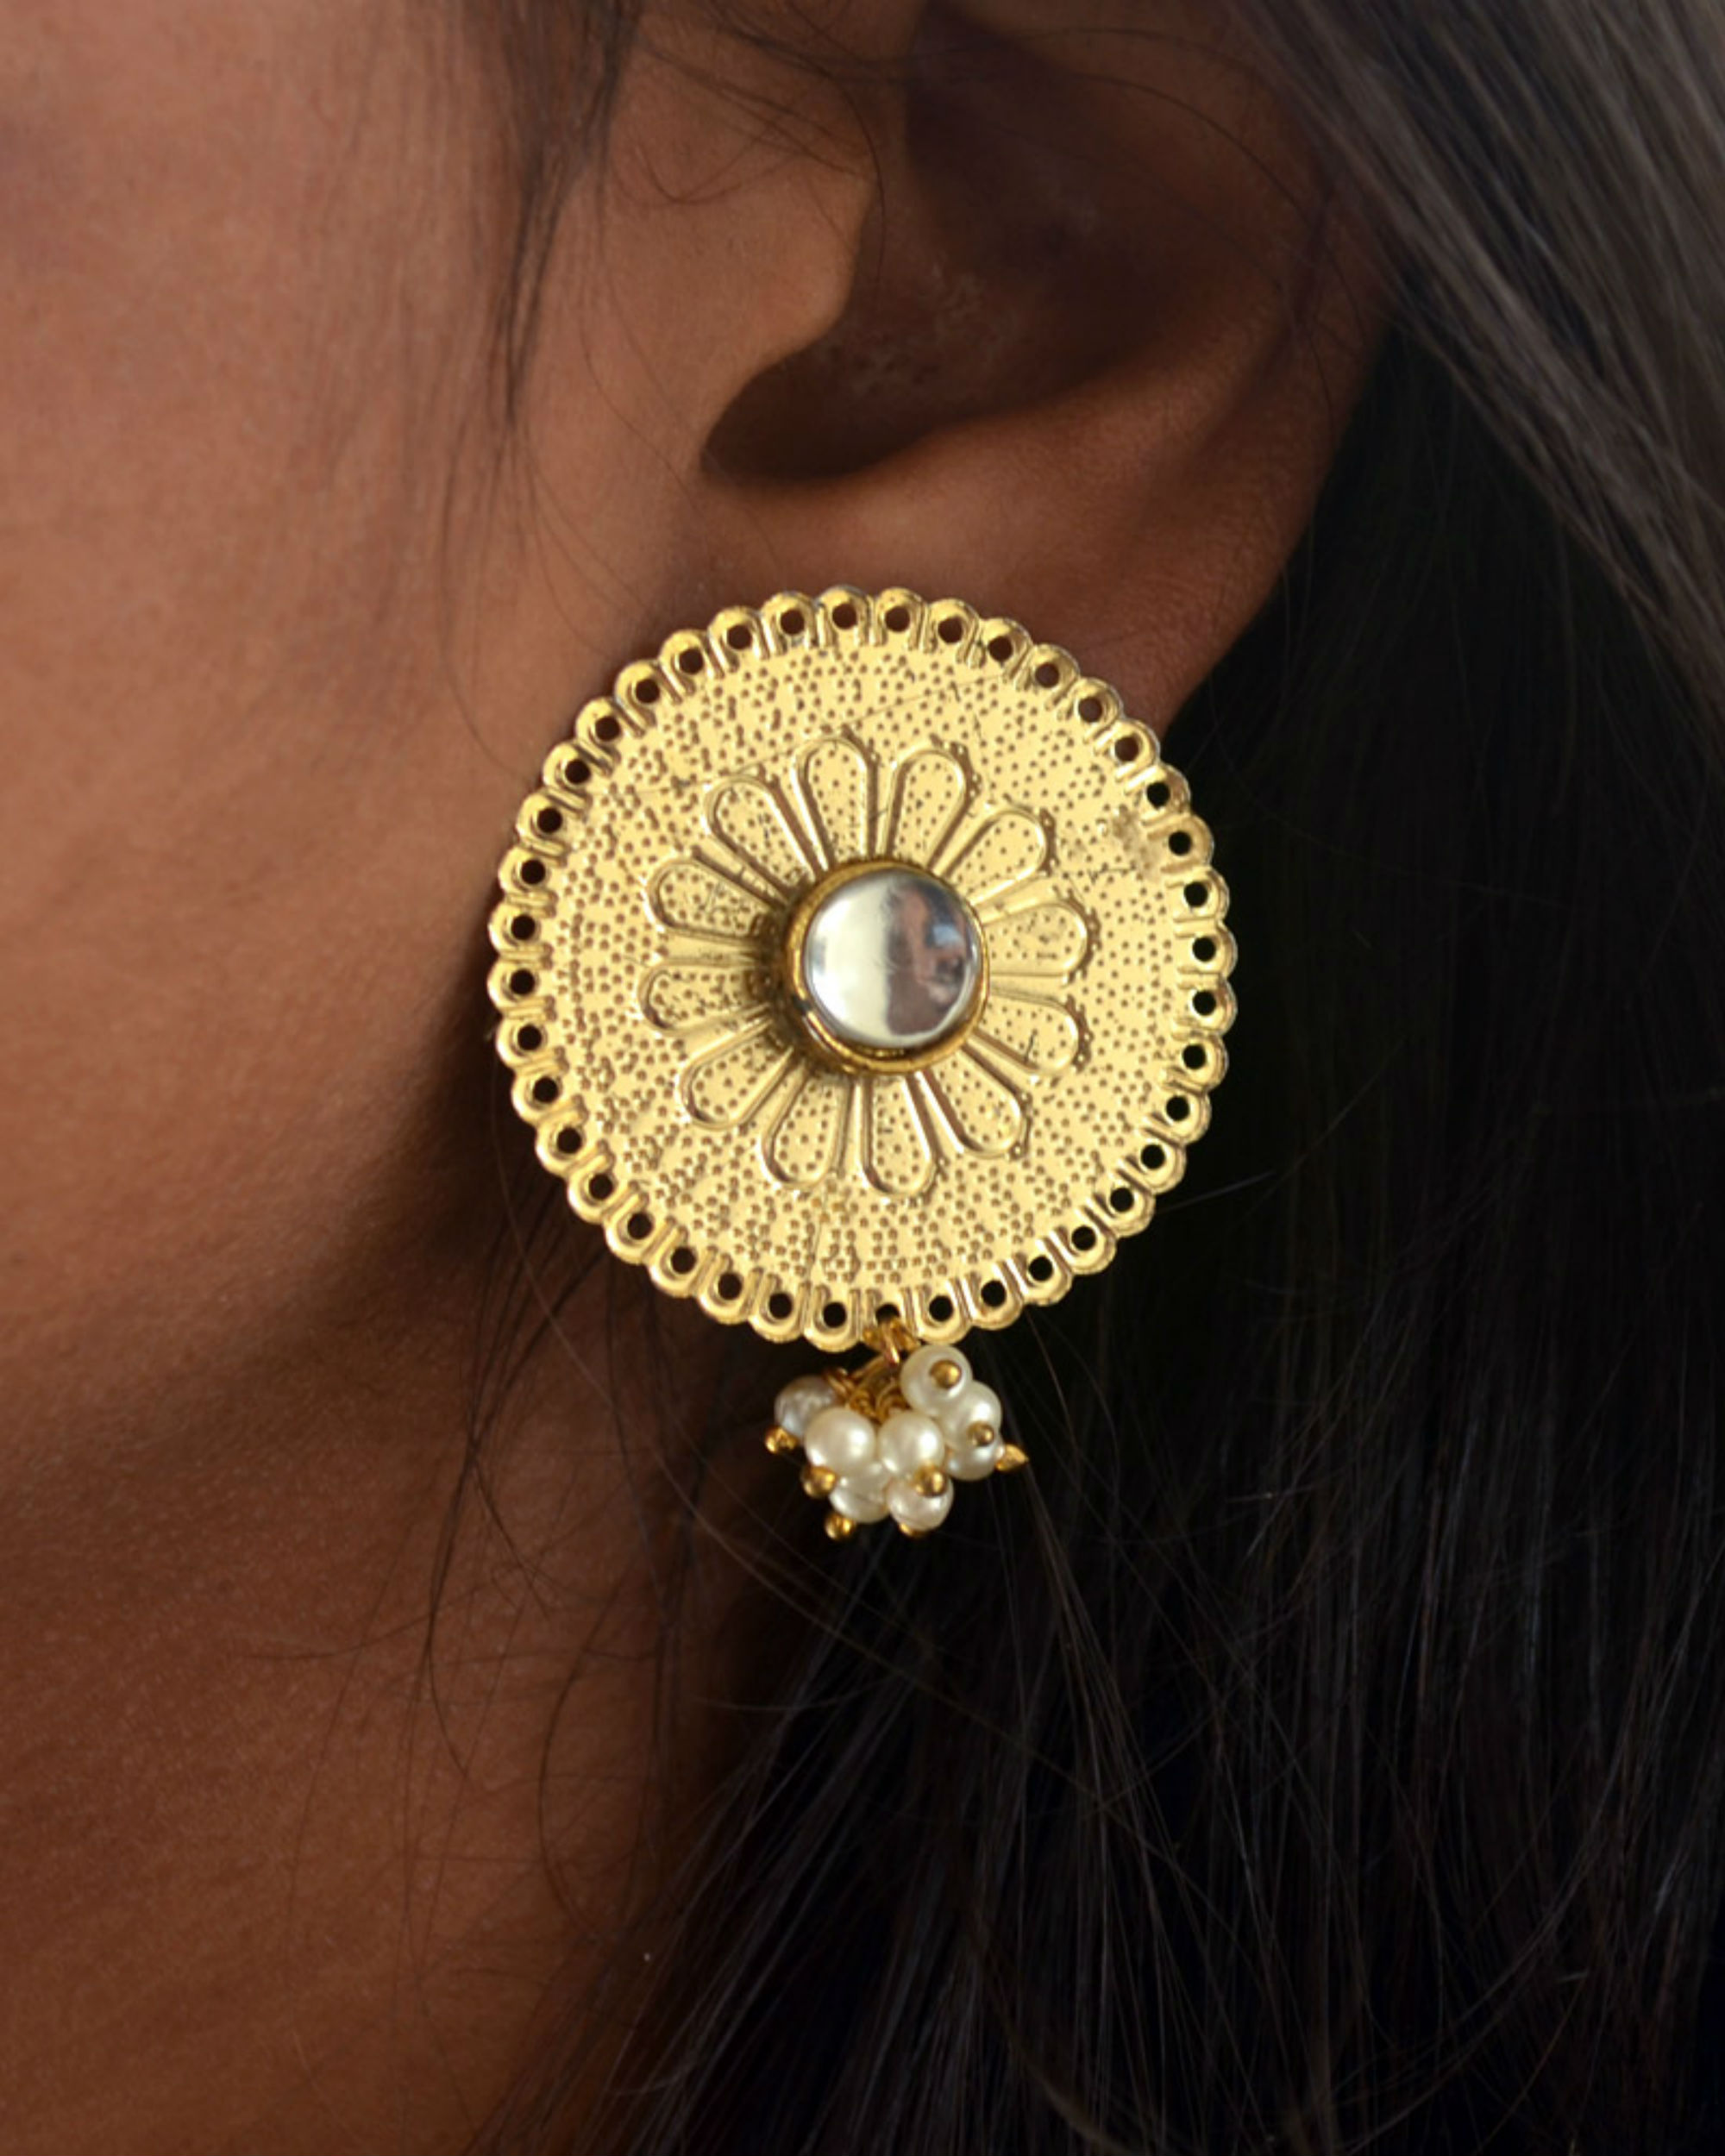 aa9a1a5ba Round kundan earrings by Abhika Creations | The Secret Label